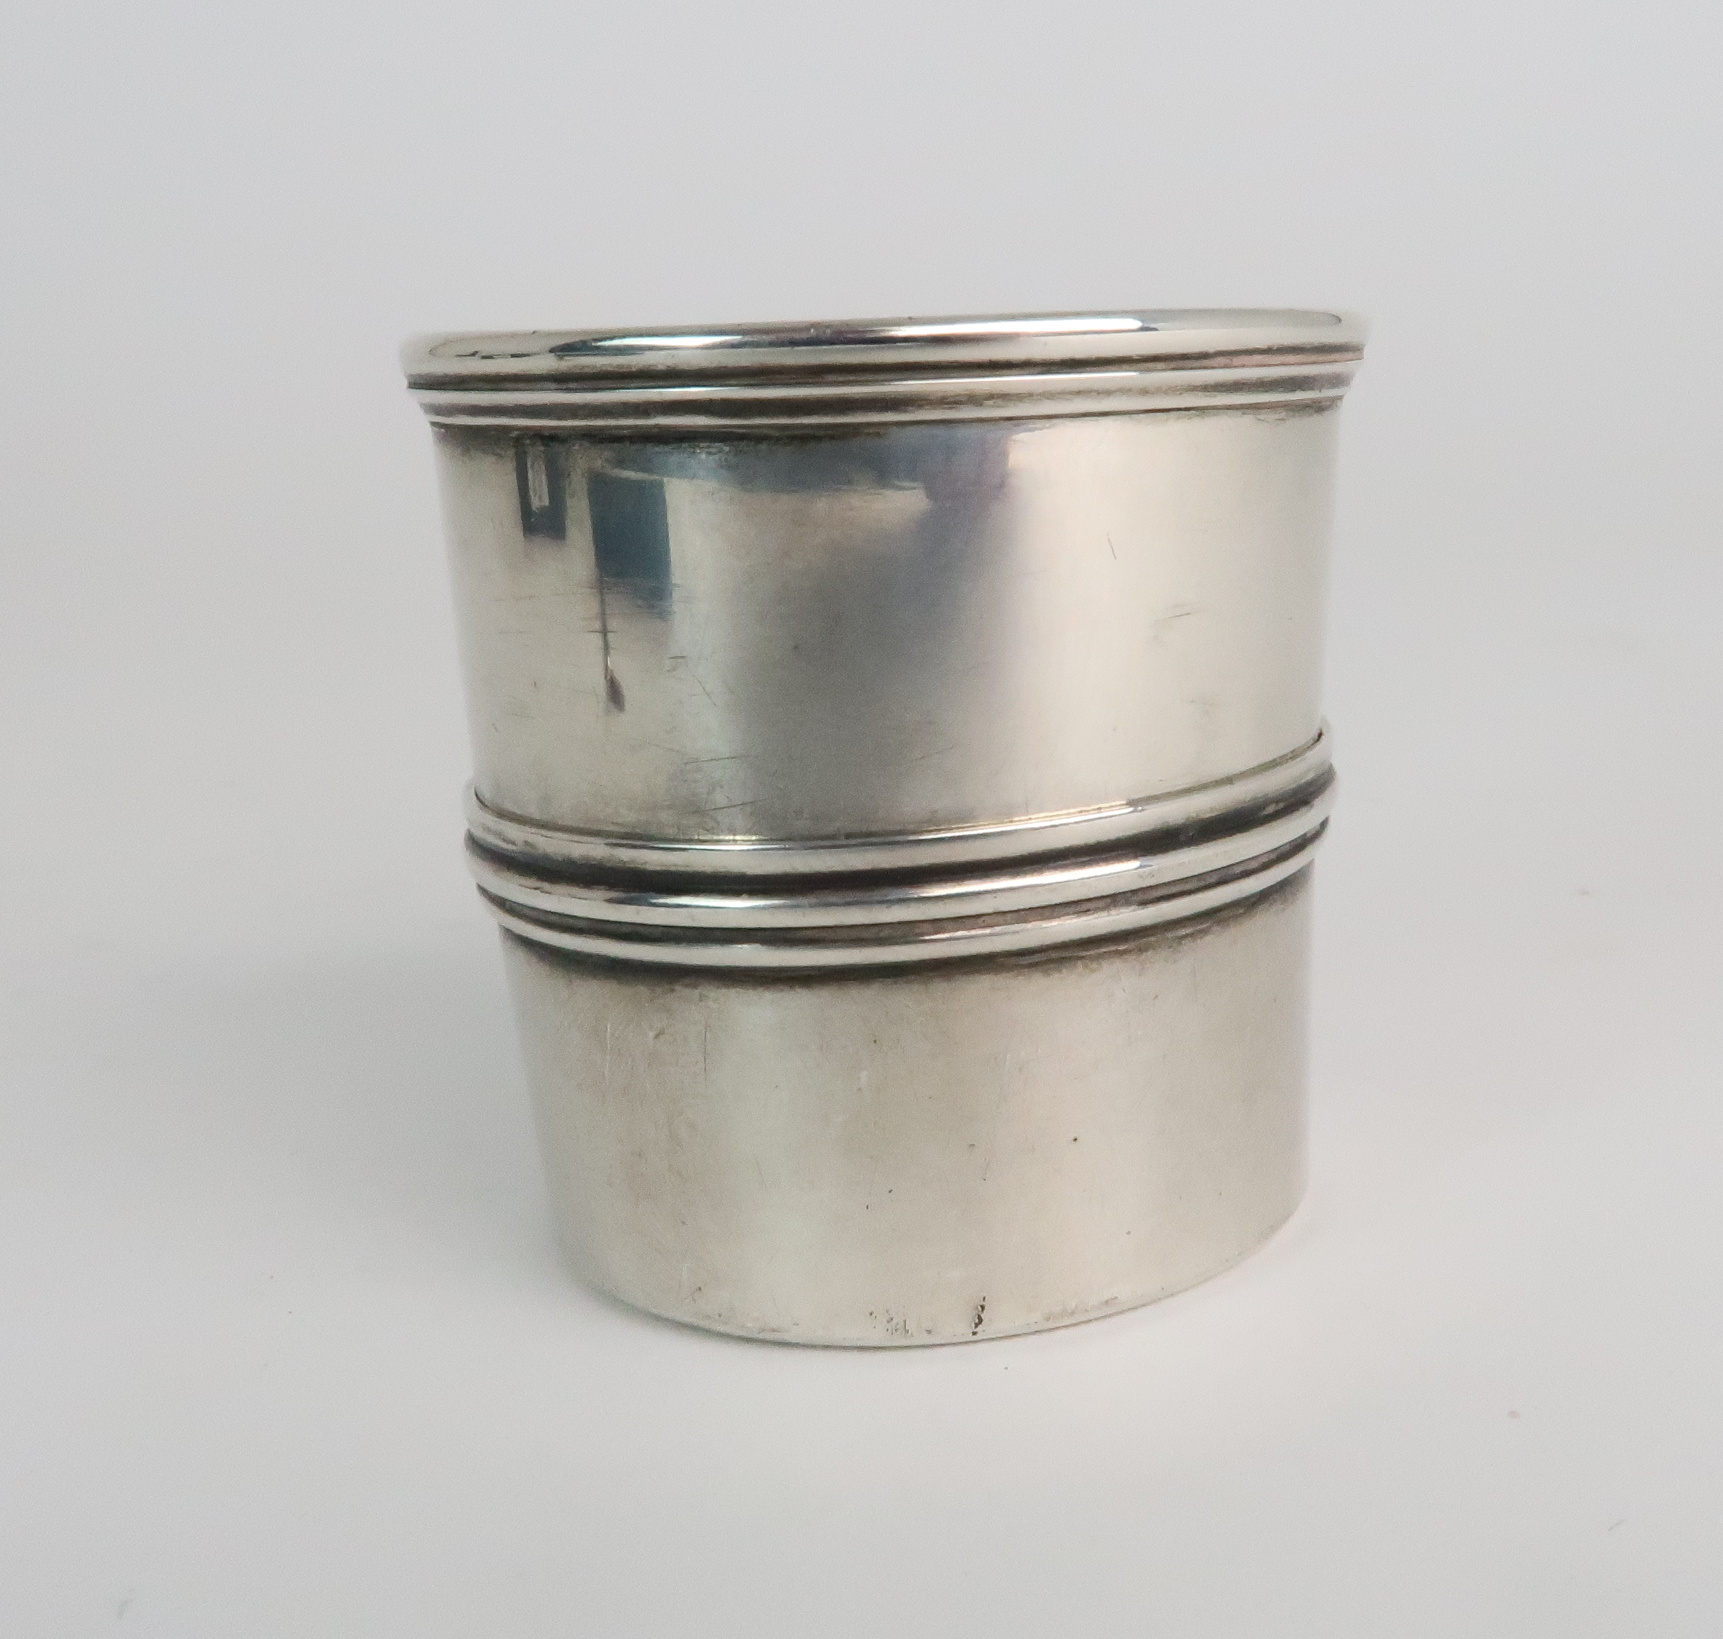 A VICTORIAN SILVER STIRRUP CUP by A G Whidhton Edinburgh 1855 4.5 cm dia. with a silver swizzle - Image 3 of 9